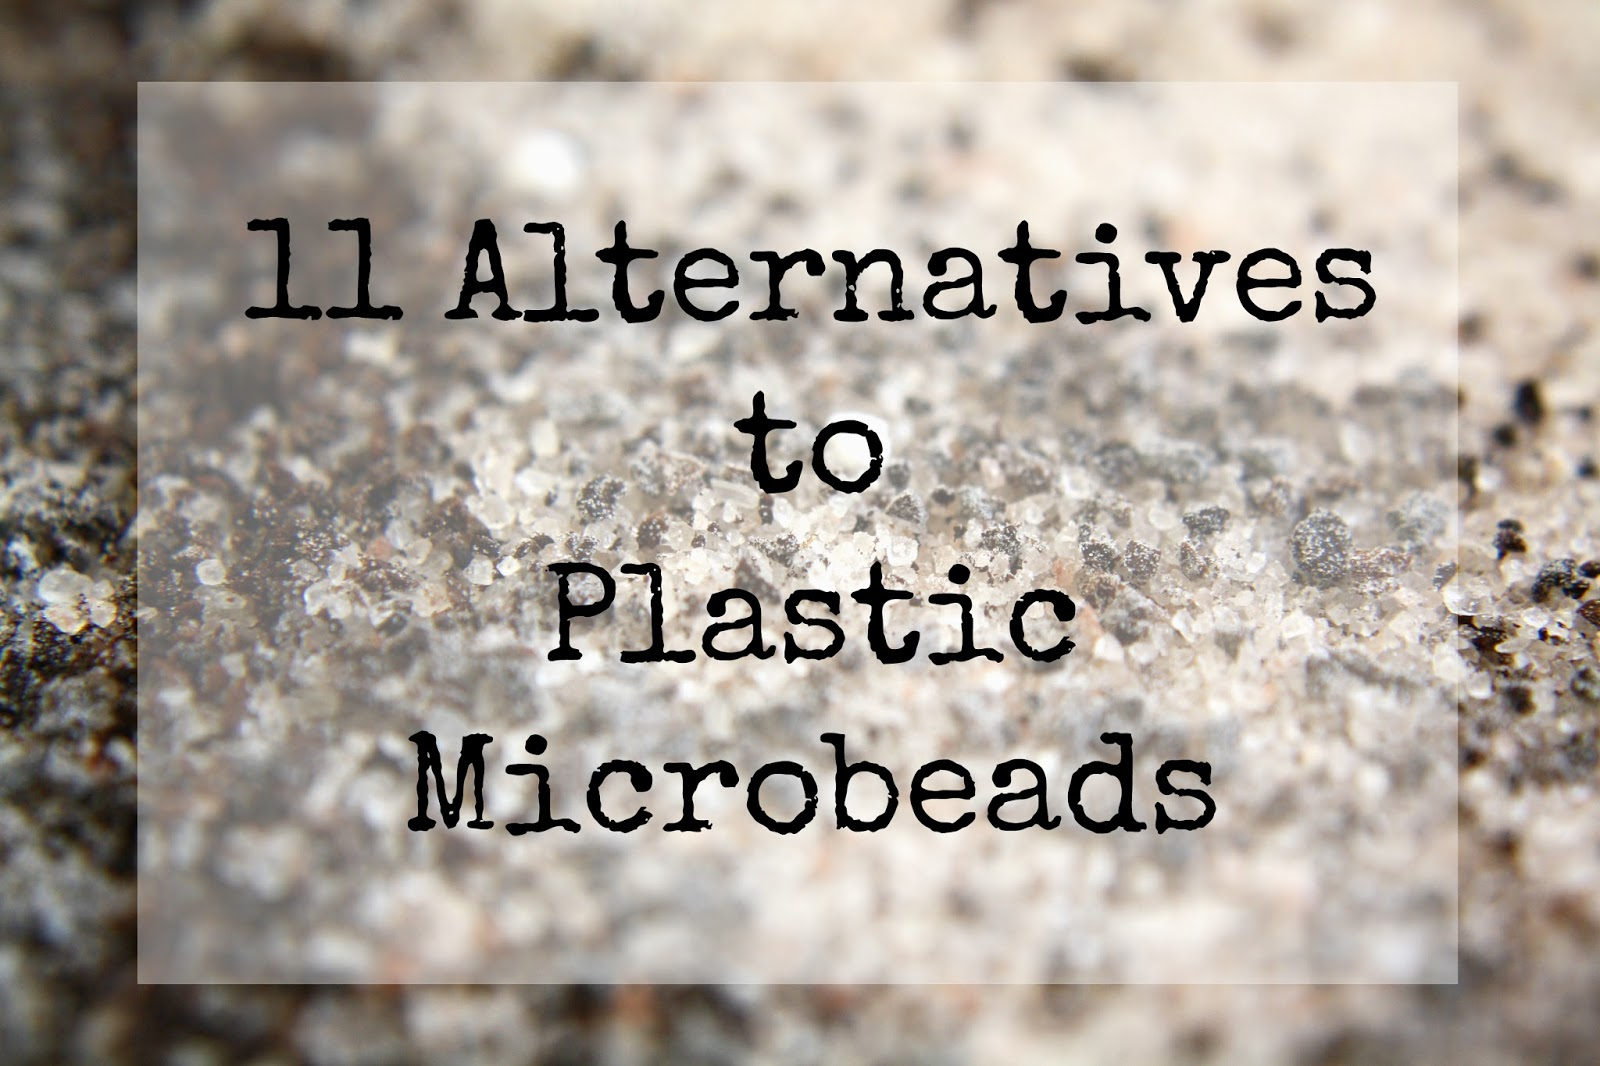 11 alternatives to plastic microbeads